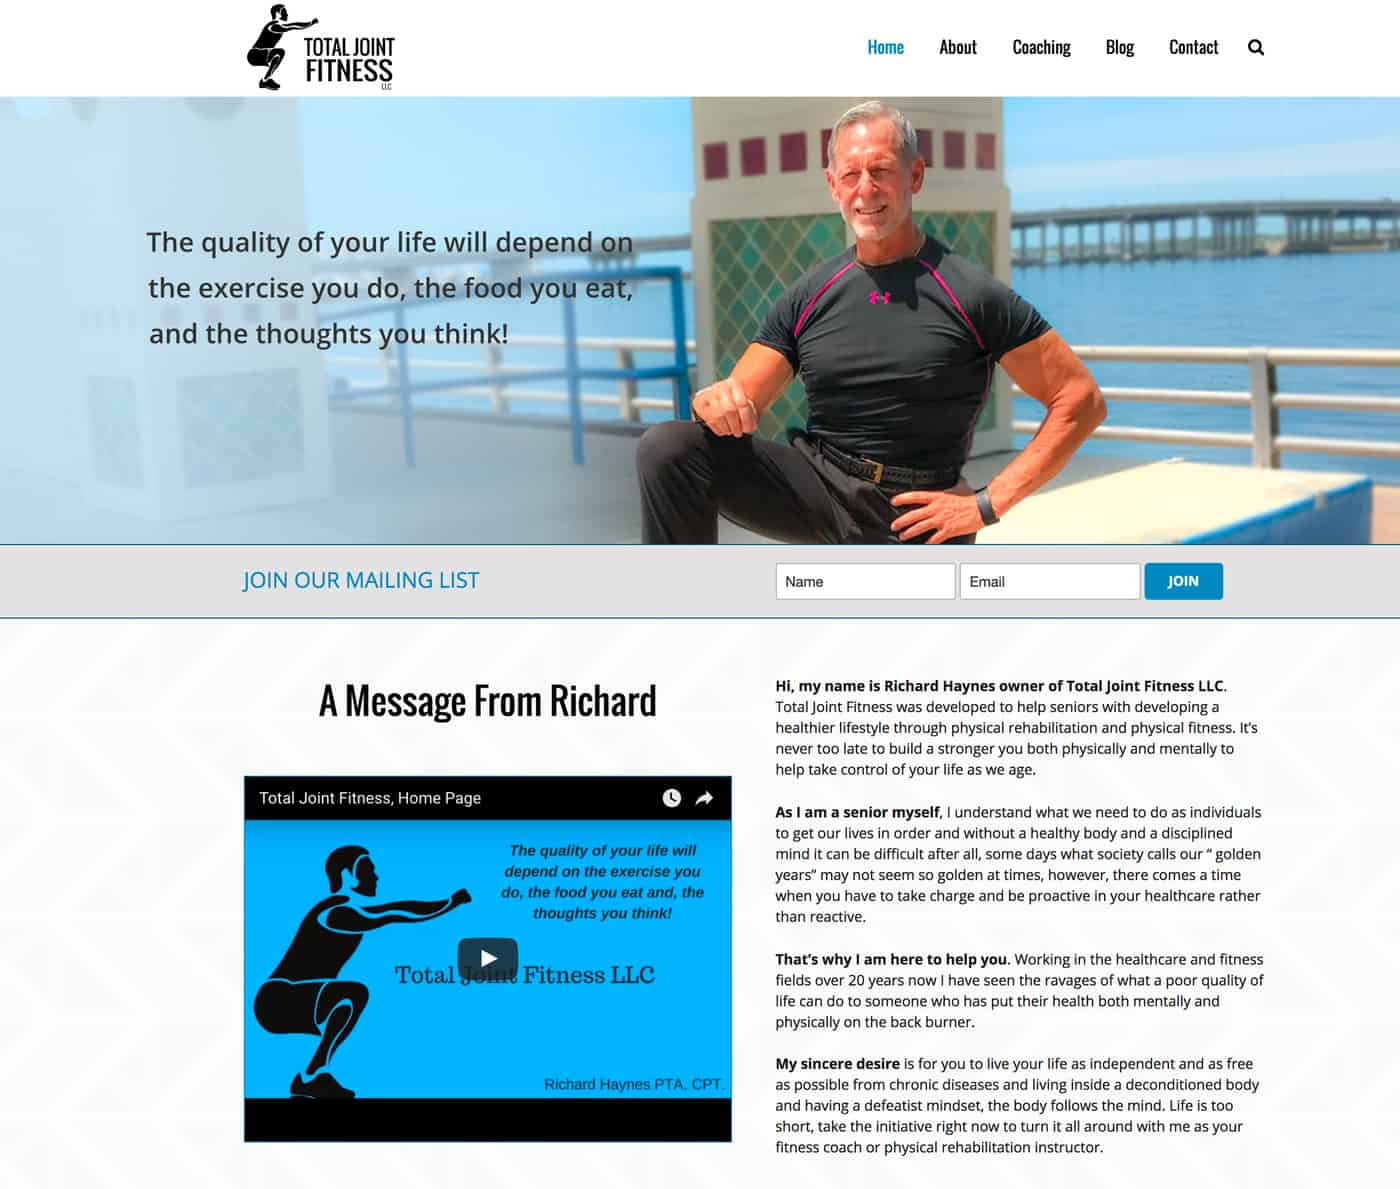 Online Fitness Trainer Seeks Help with Image and Branding